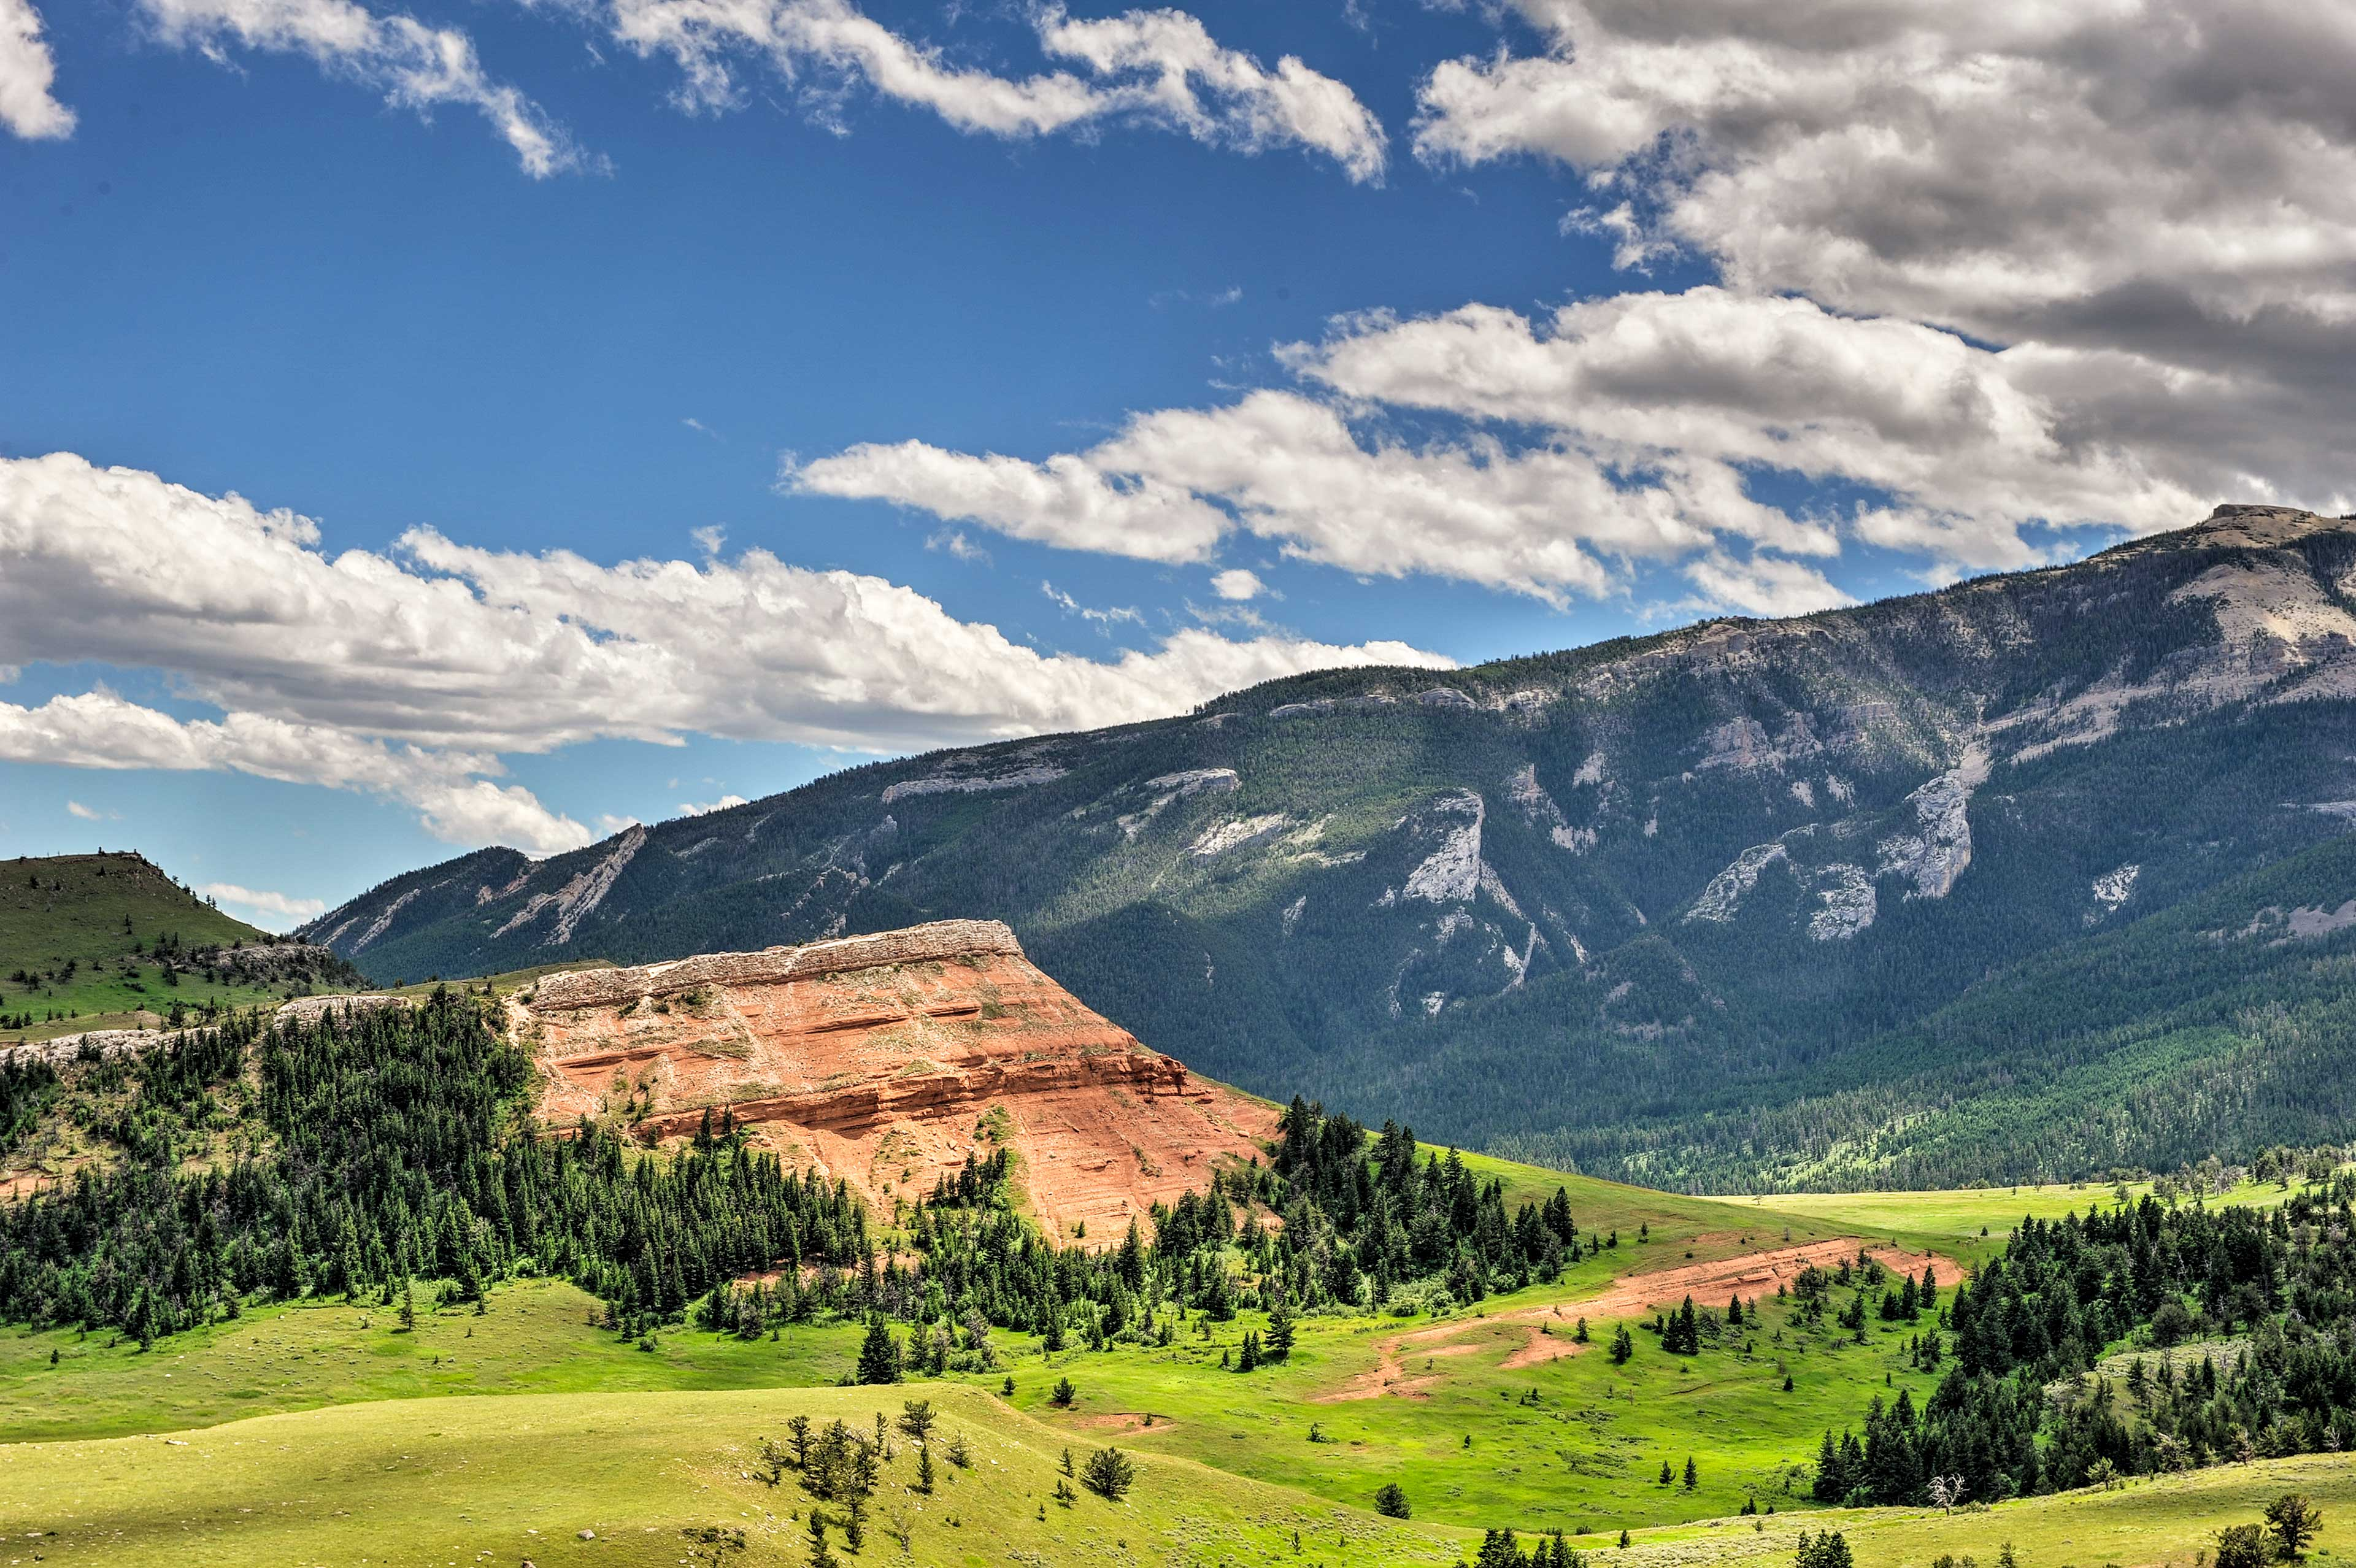 Get away from it all in the grand western landscape.